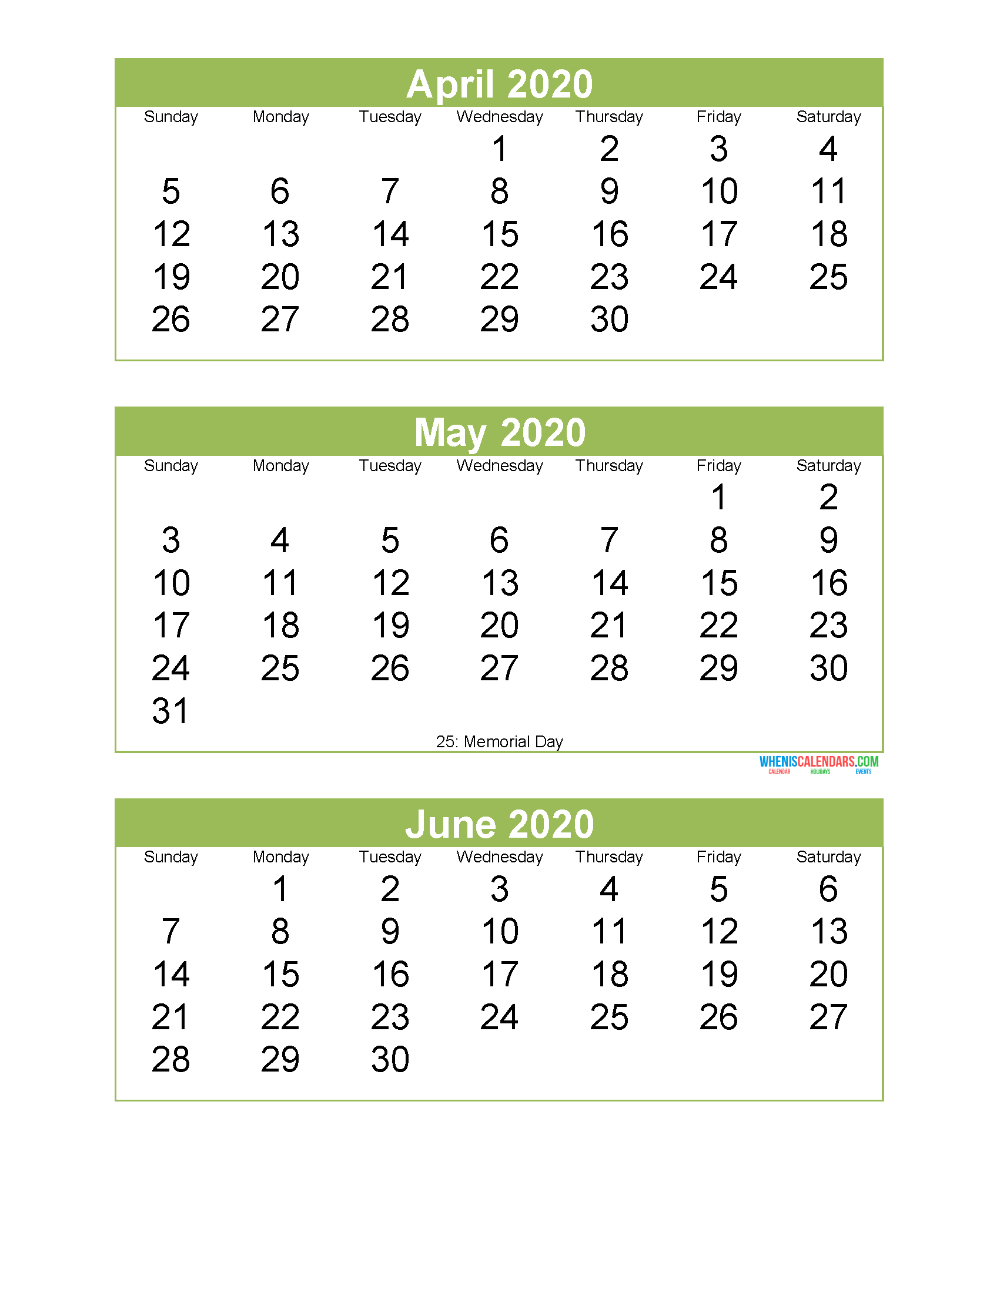 Free Printable 3 Month Calendar 2020 April May June | Free with 3 Month Printable Calendar 2020